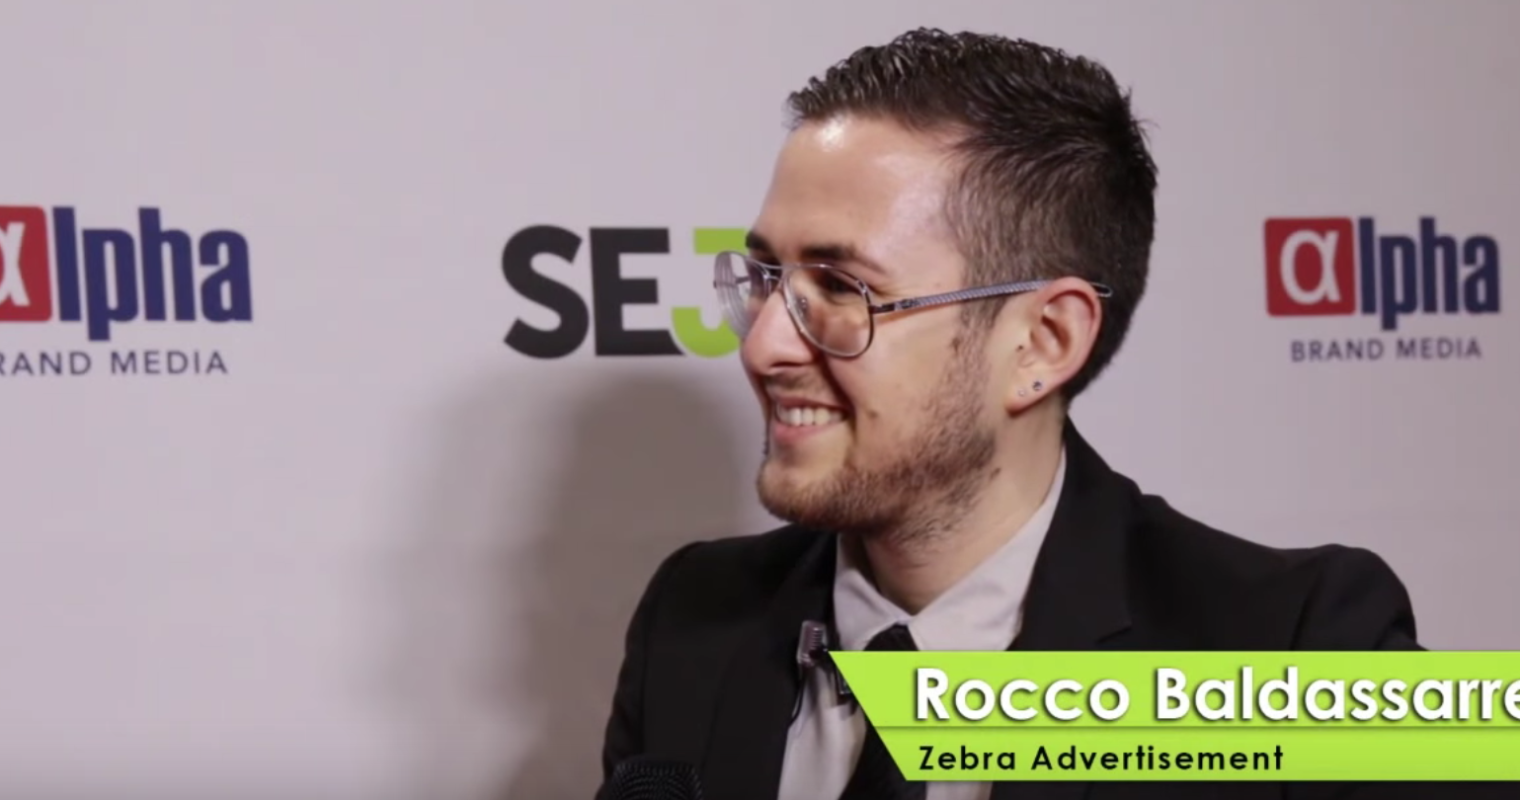 Common Misconceptions About Facebook Advertising: An Interview With Rocco Baldassarre